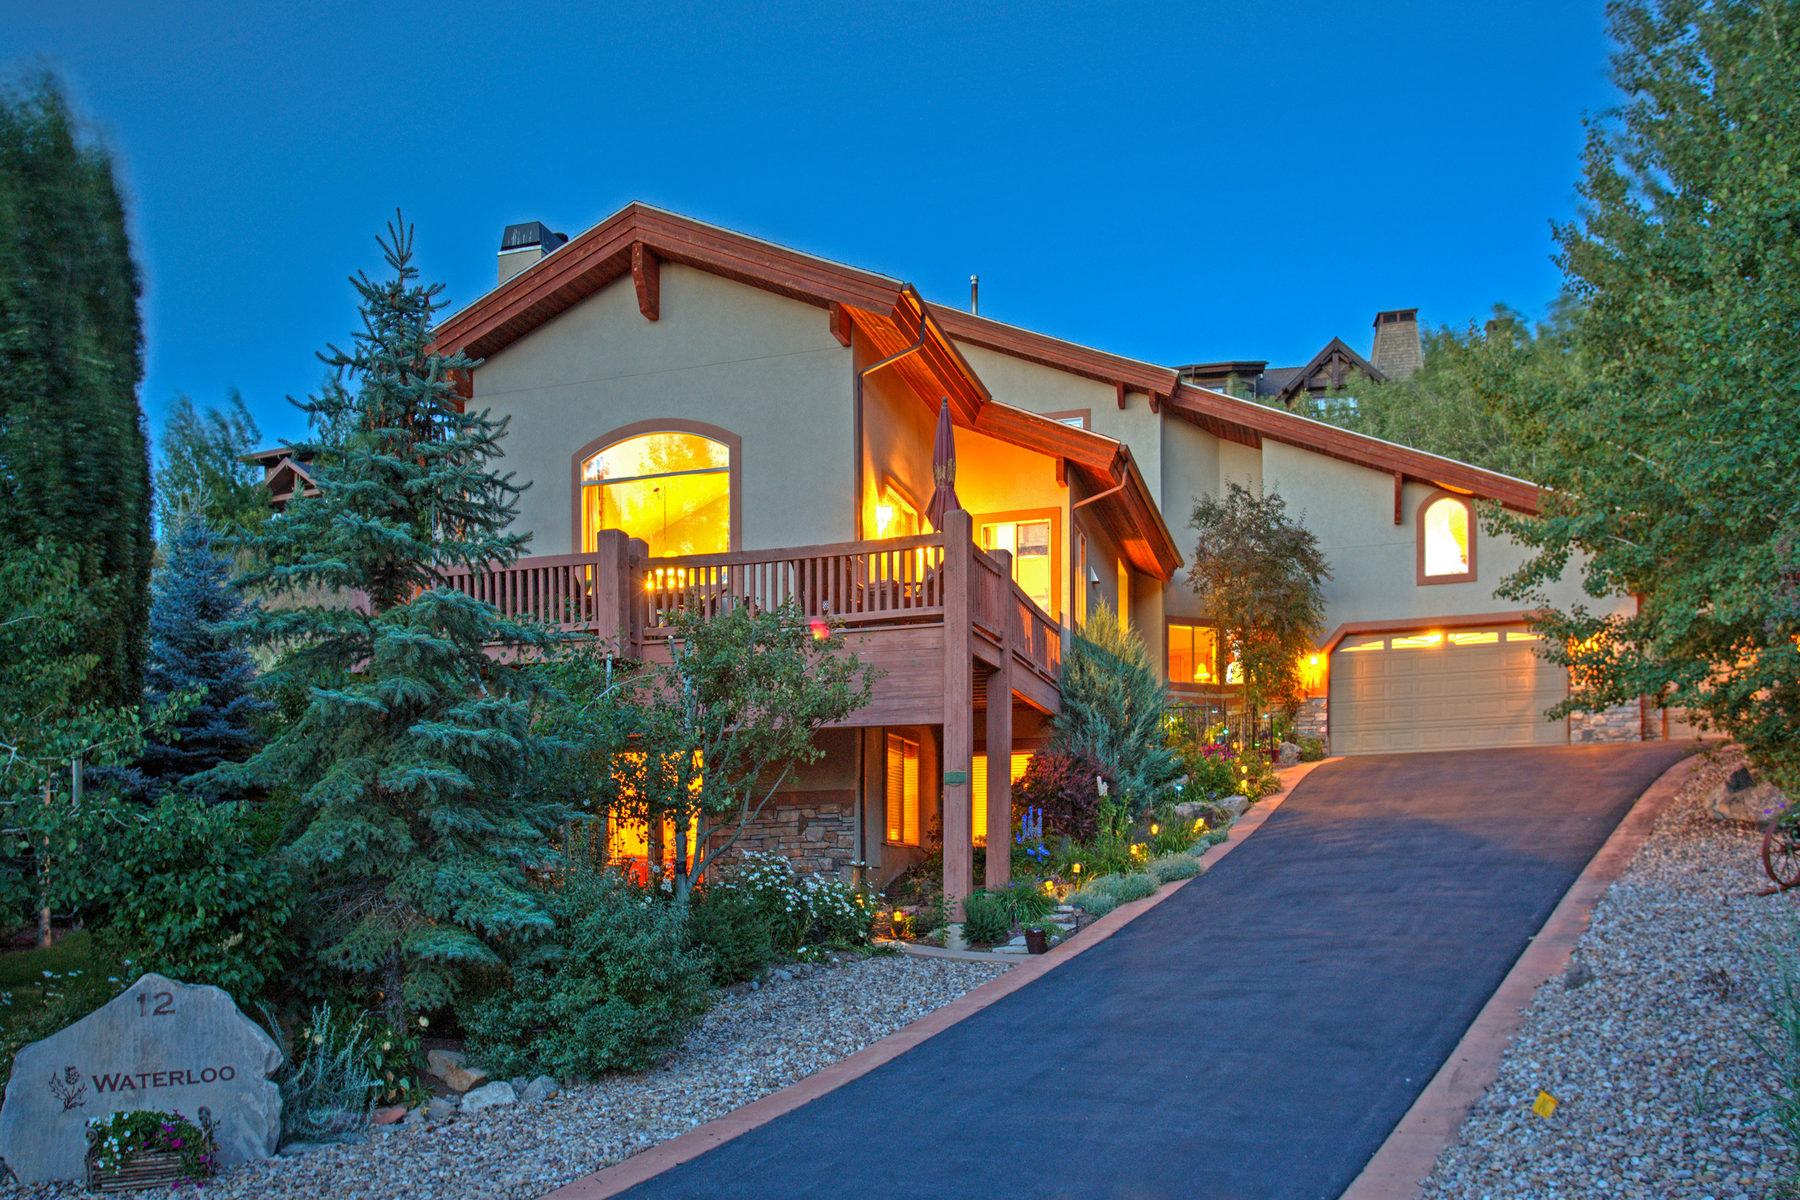 Single Family Home for Sale at One of Chatham Hills Finest Homes 12 Waterloo Cir Park City, Utah 84060 United States